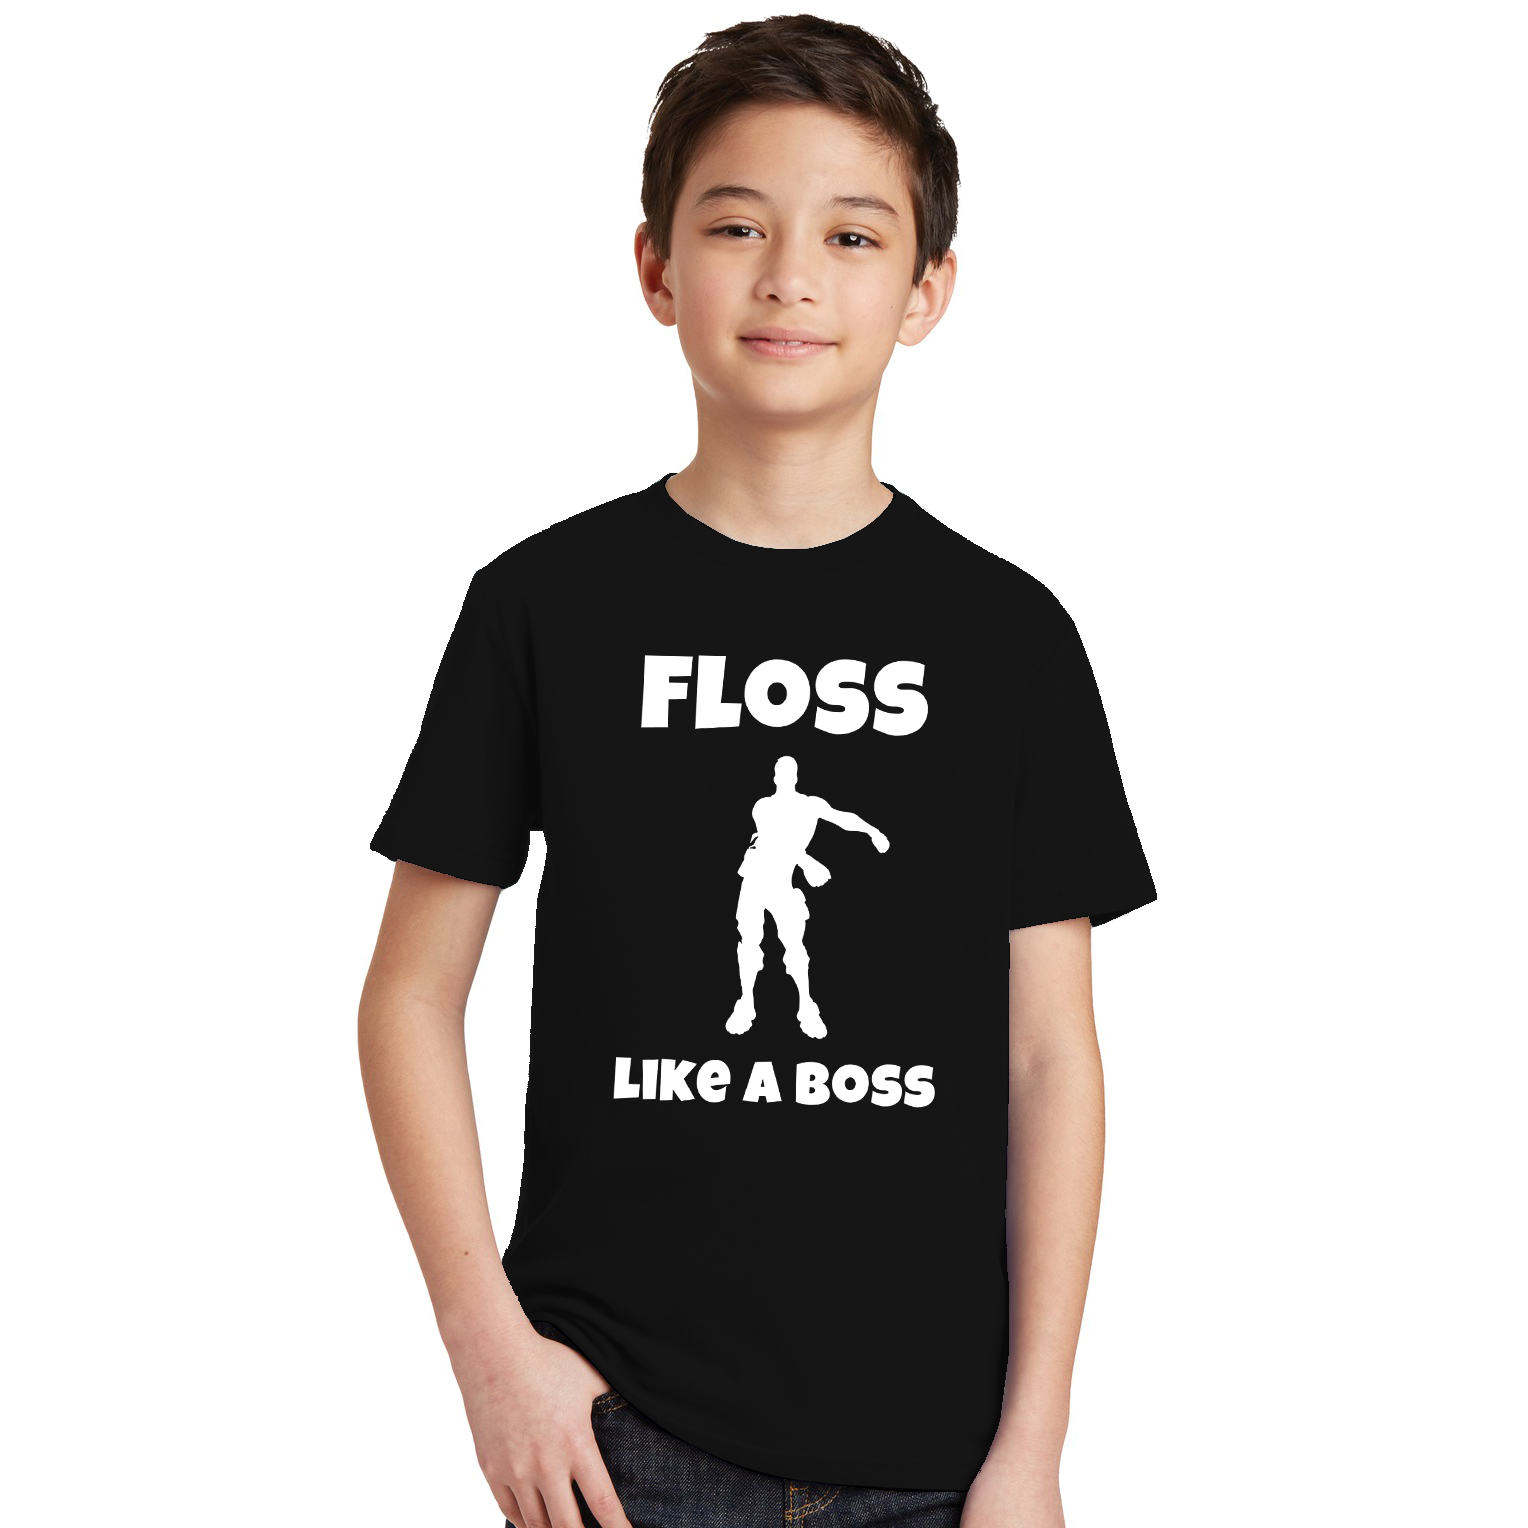 Boys T-Shirts Floss Gamer Boss Funny Like Kids Tops Short-Sleeve Fashion Summer Tees